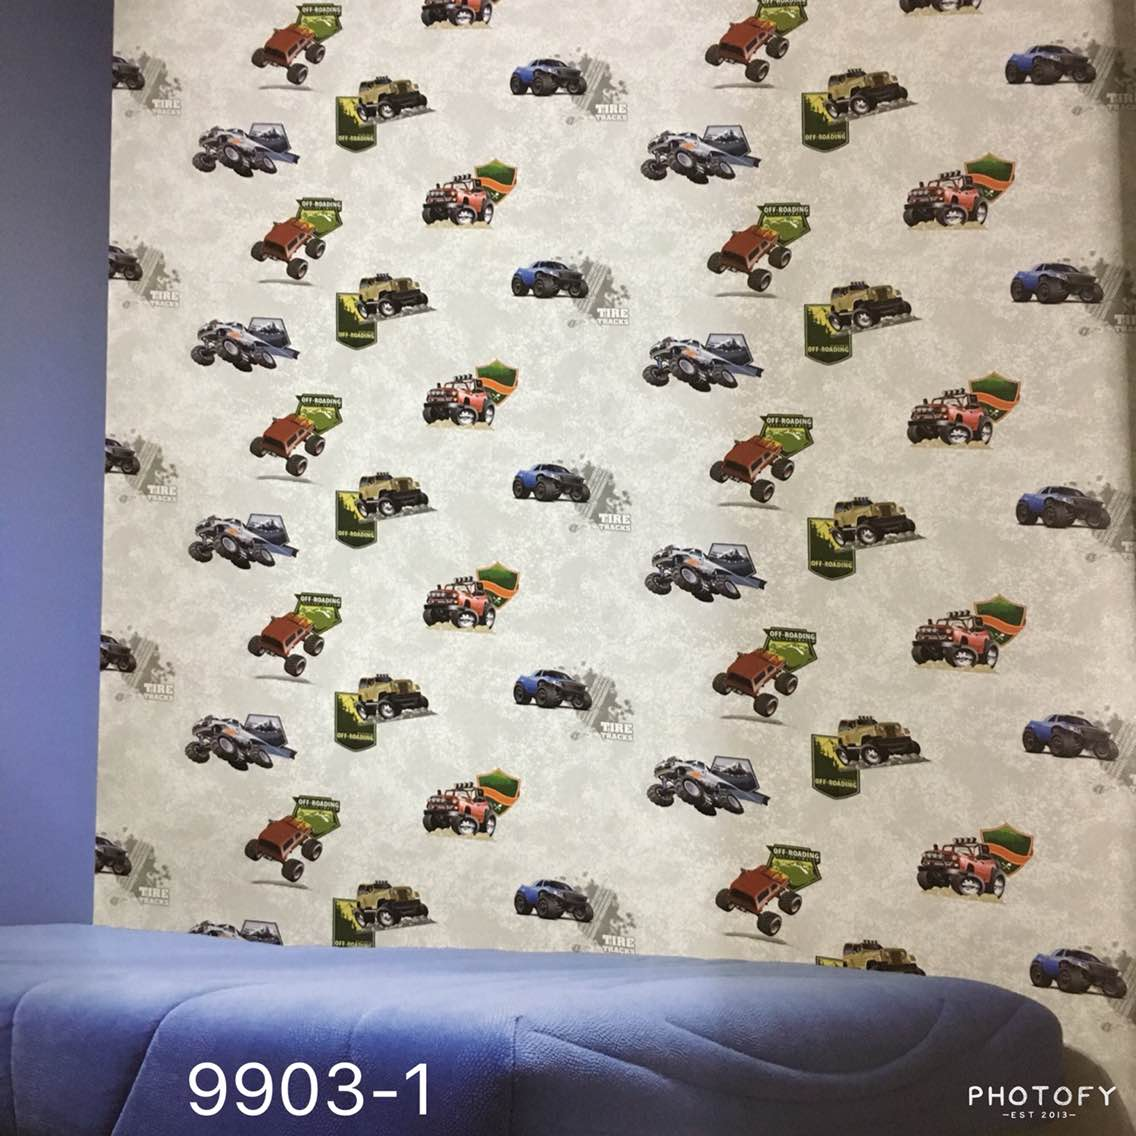 Best Imported Wallpaper supplier in Delhi.   Best wallpaper Design for Boys Room its a Car design for Teenagers.   A Wonder land wallpaper supplier in Delhi. Product code is 9903-1.  To buy call us  Wallparadise- Wonder Land Imported Wallpaper Supplier inDelhi.